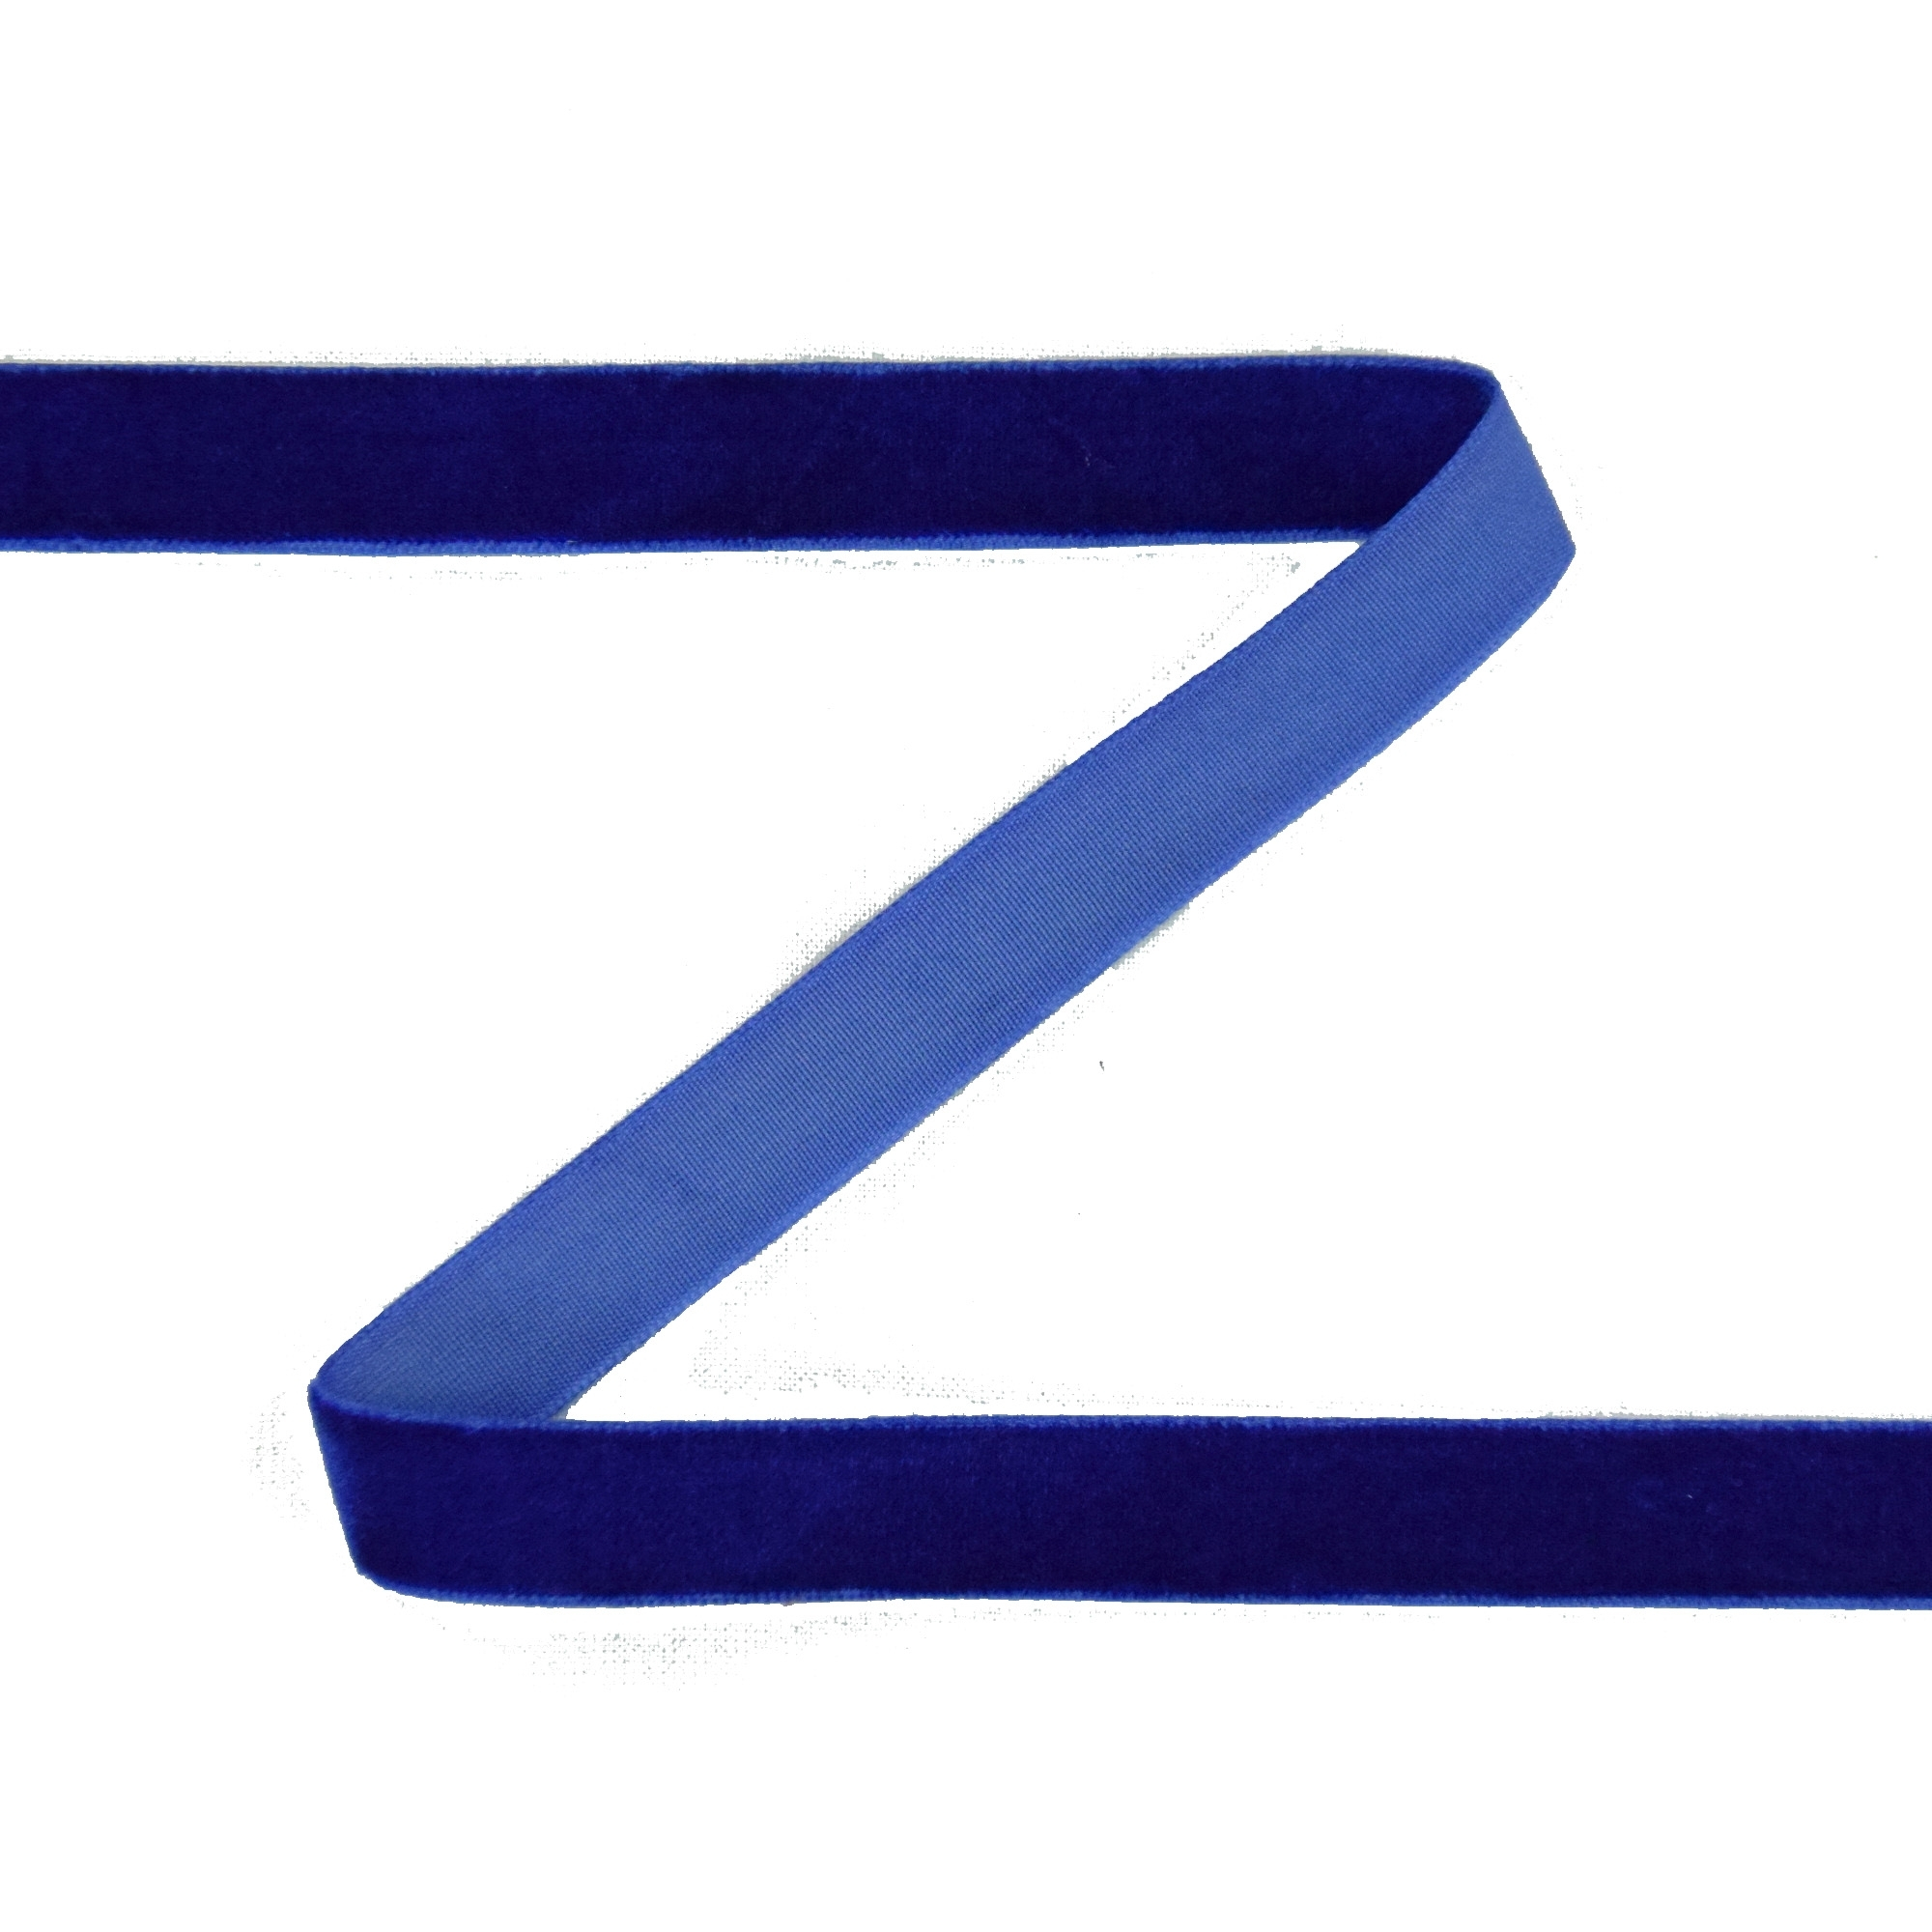 Samtband 15 mm, royalblau | 30264 | blau